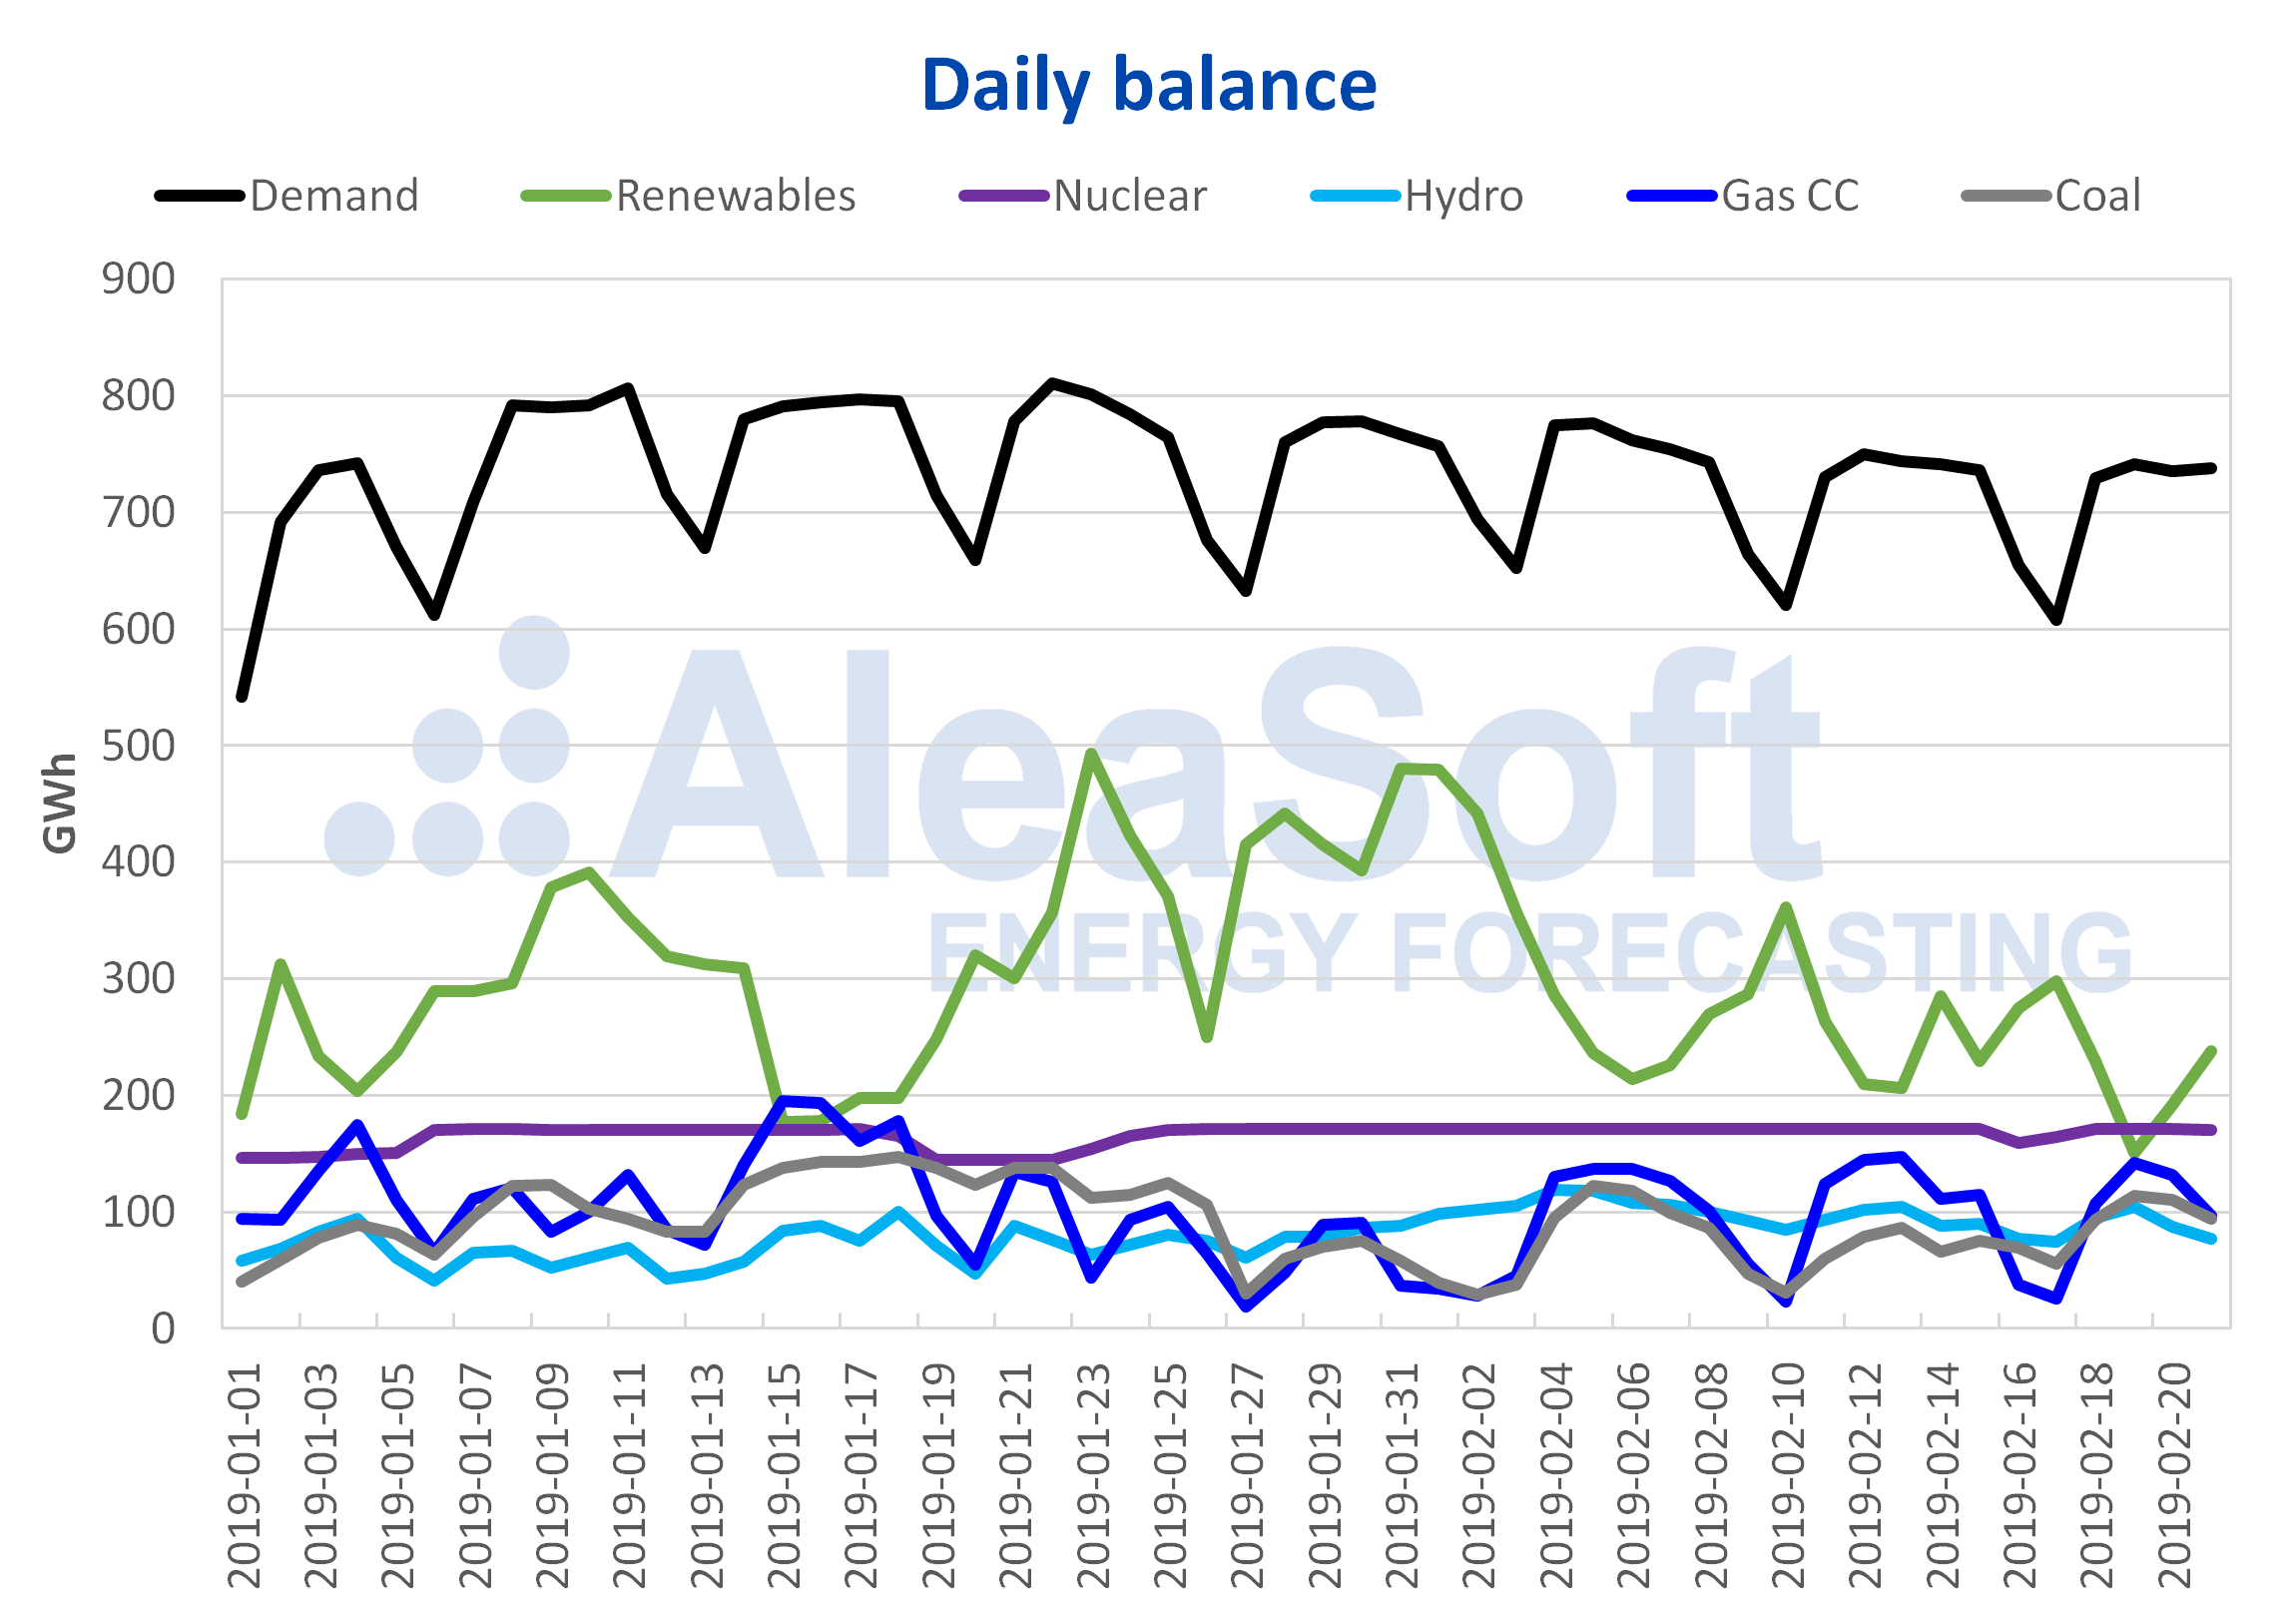 AleaSoft - Daily Balance electricity Spain Demand Production=